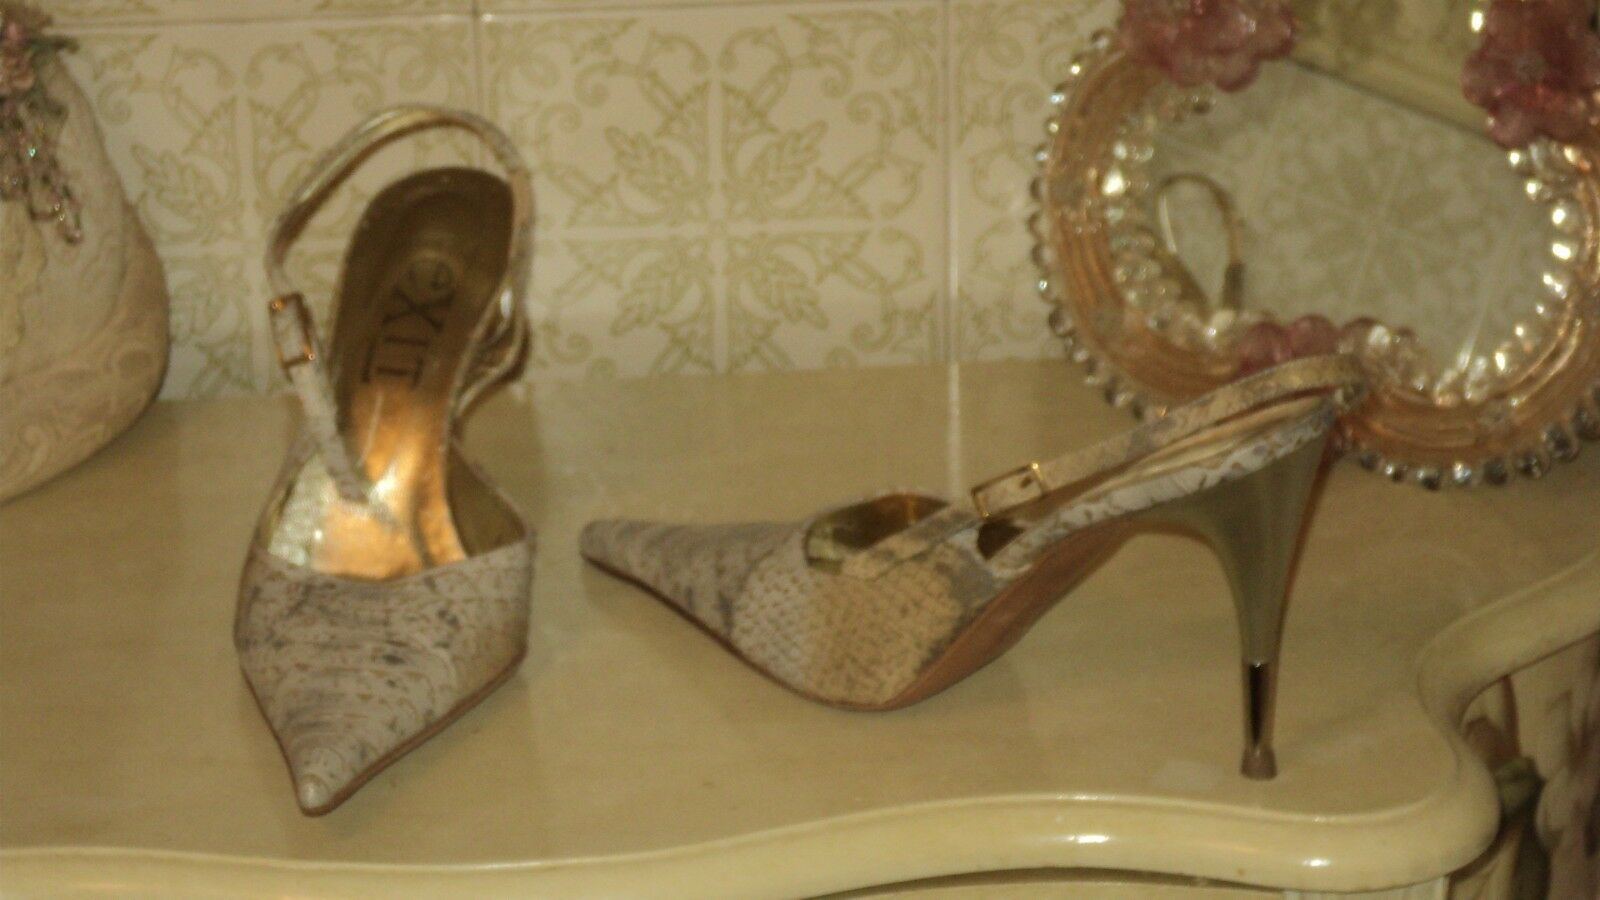 ITALIAN EXIT SNAKESKIN LEATHER BEIGE Gold POINTY STILETTO IRON HEELEU37US6.5